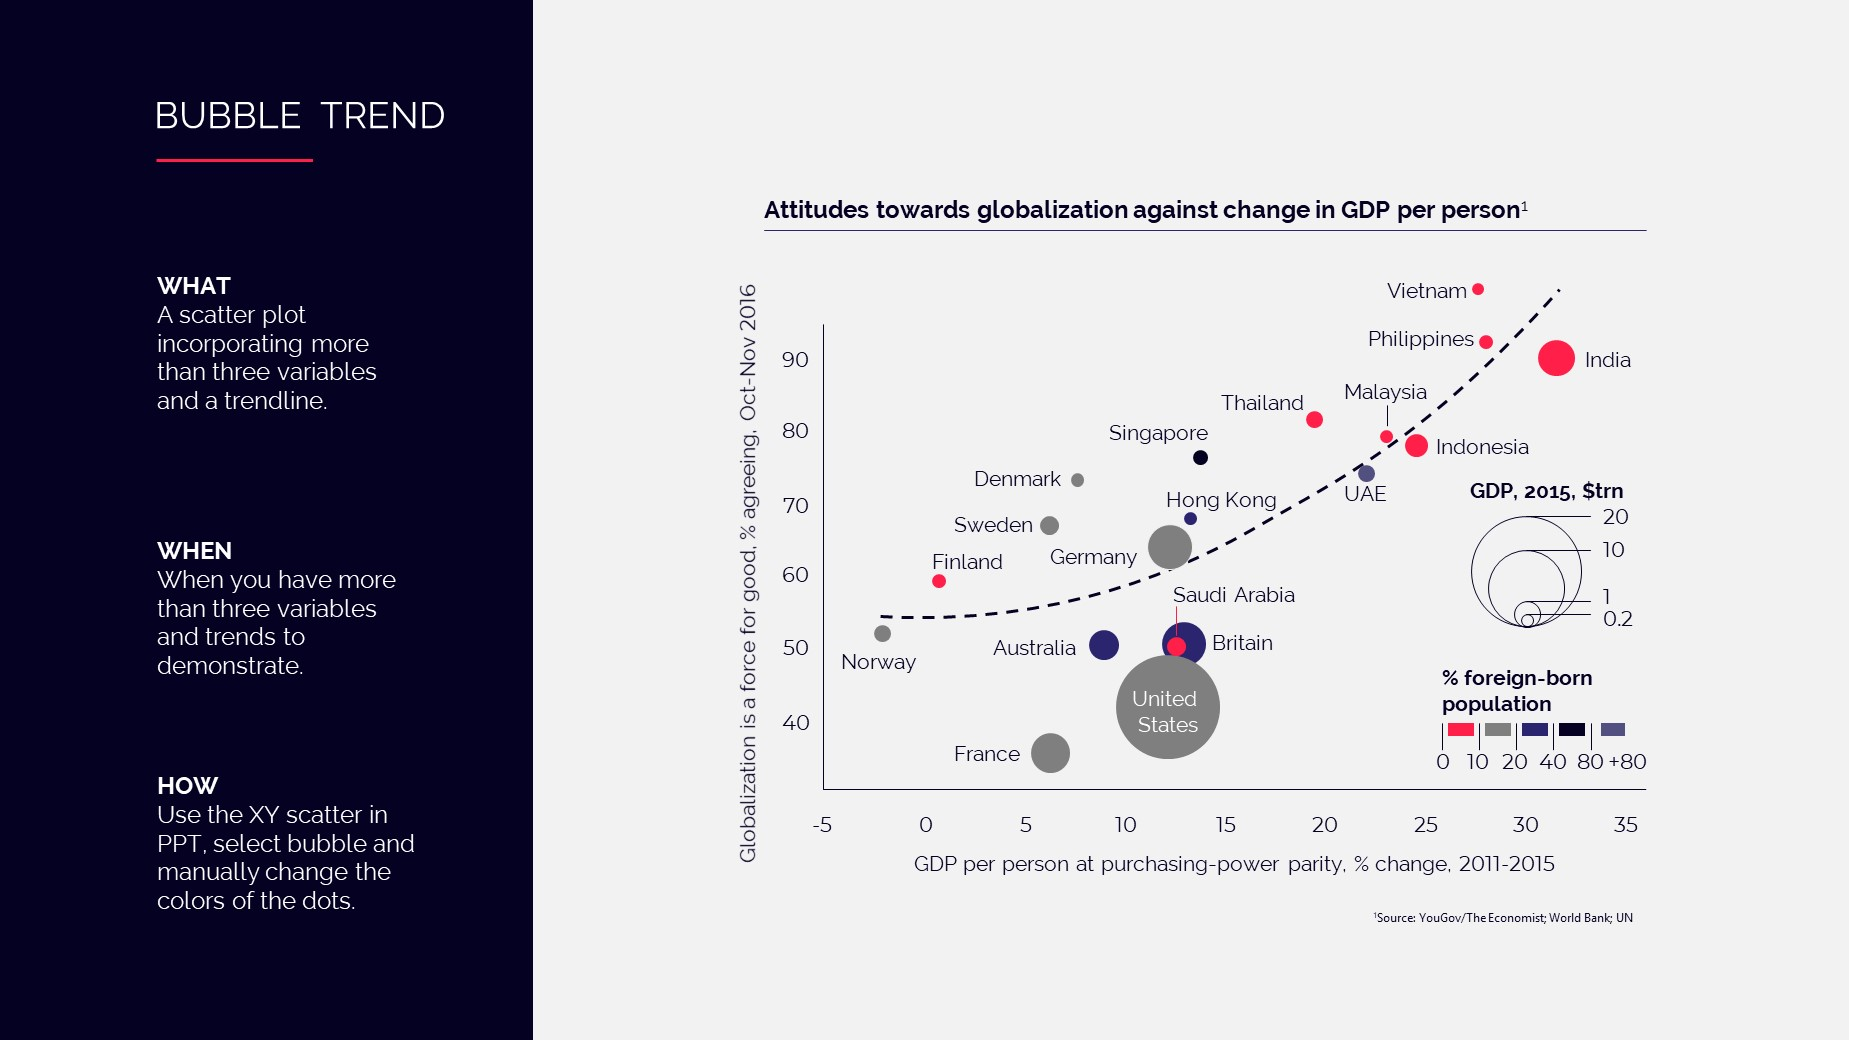 PowerPoint slide showing attitudes towards globalization against change in GDP per person